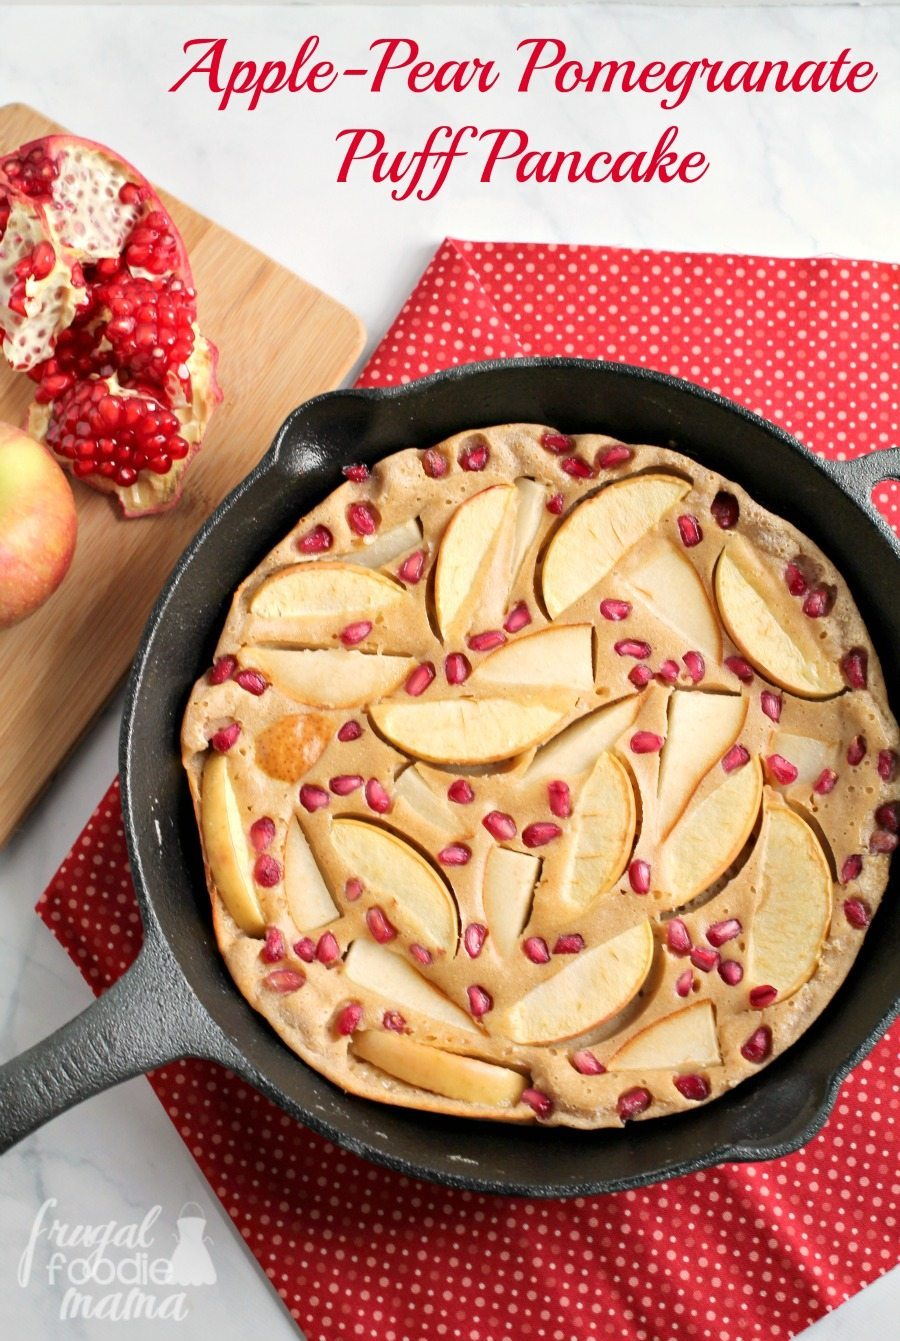 Recipe for Apple-Pear-Pomegranate-Puff-Pancake